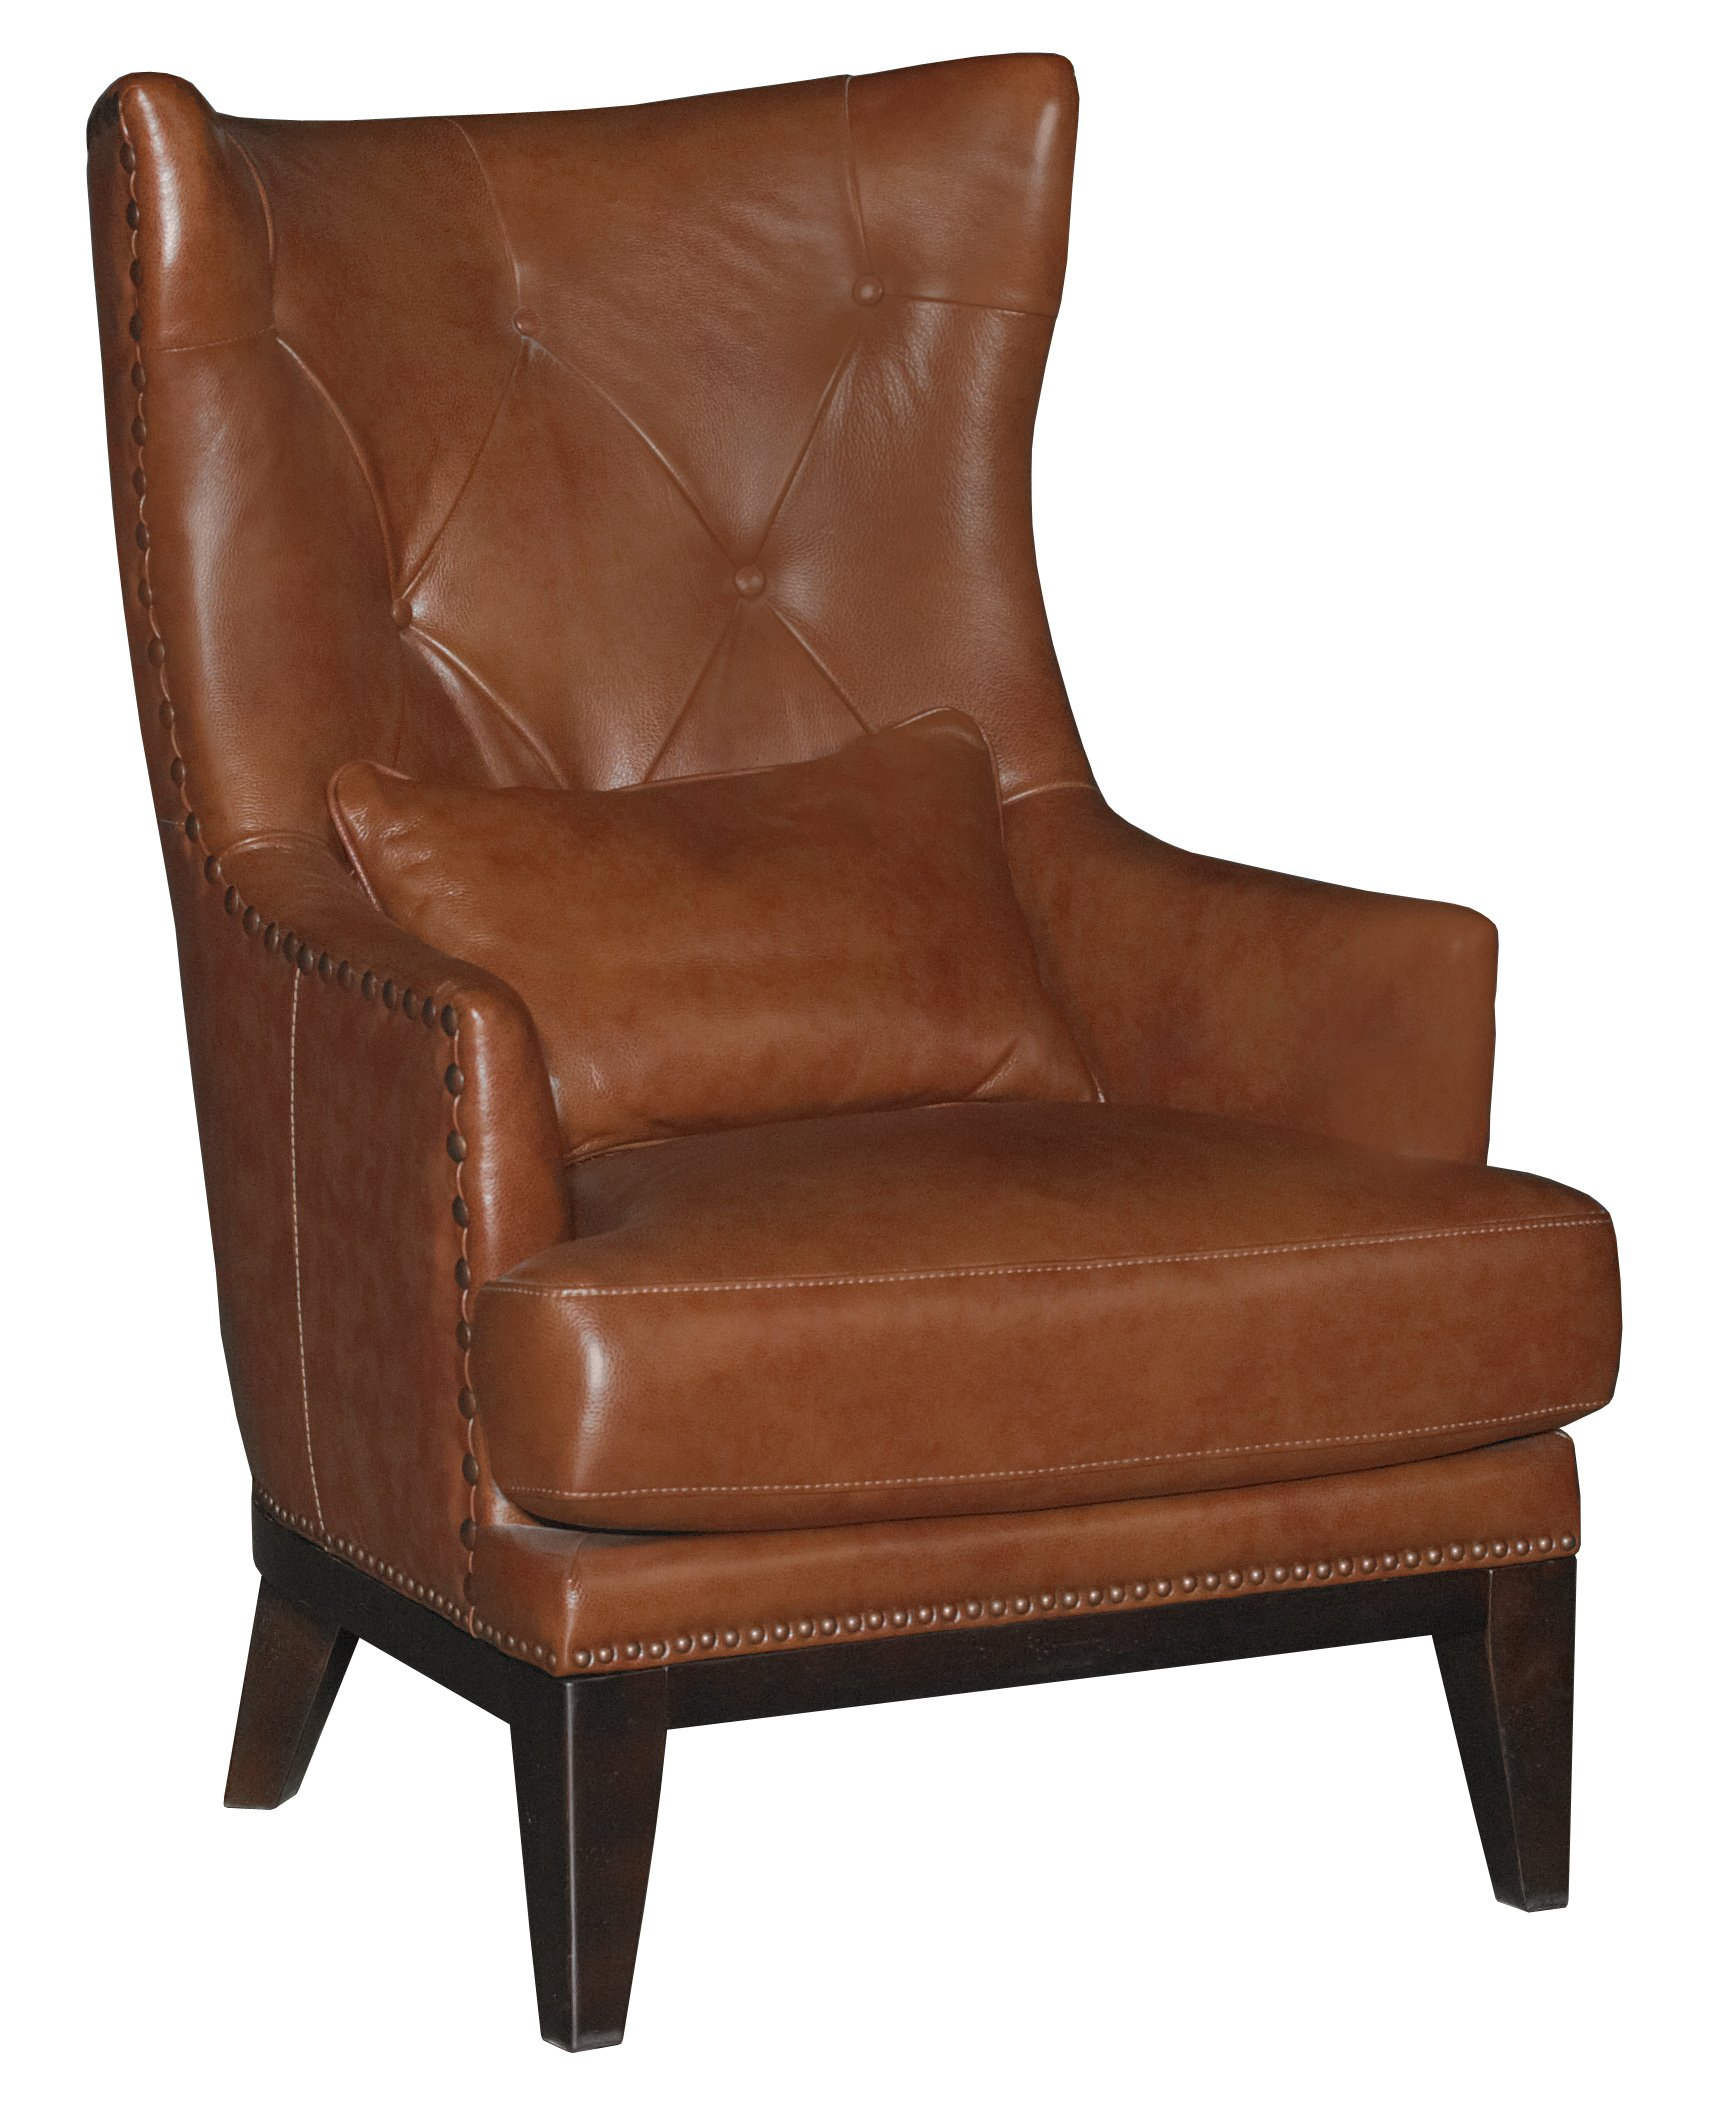 Brown Accent Chairs Chestnut Brown Leather Match Accent Chair And Ottoman